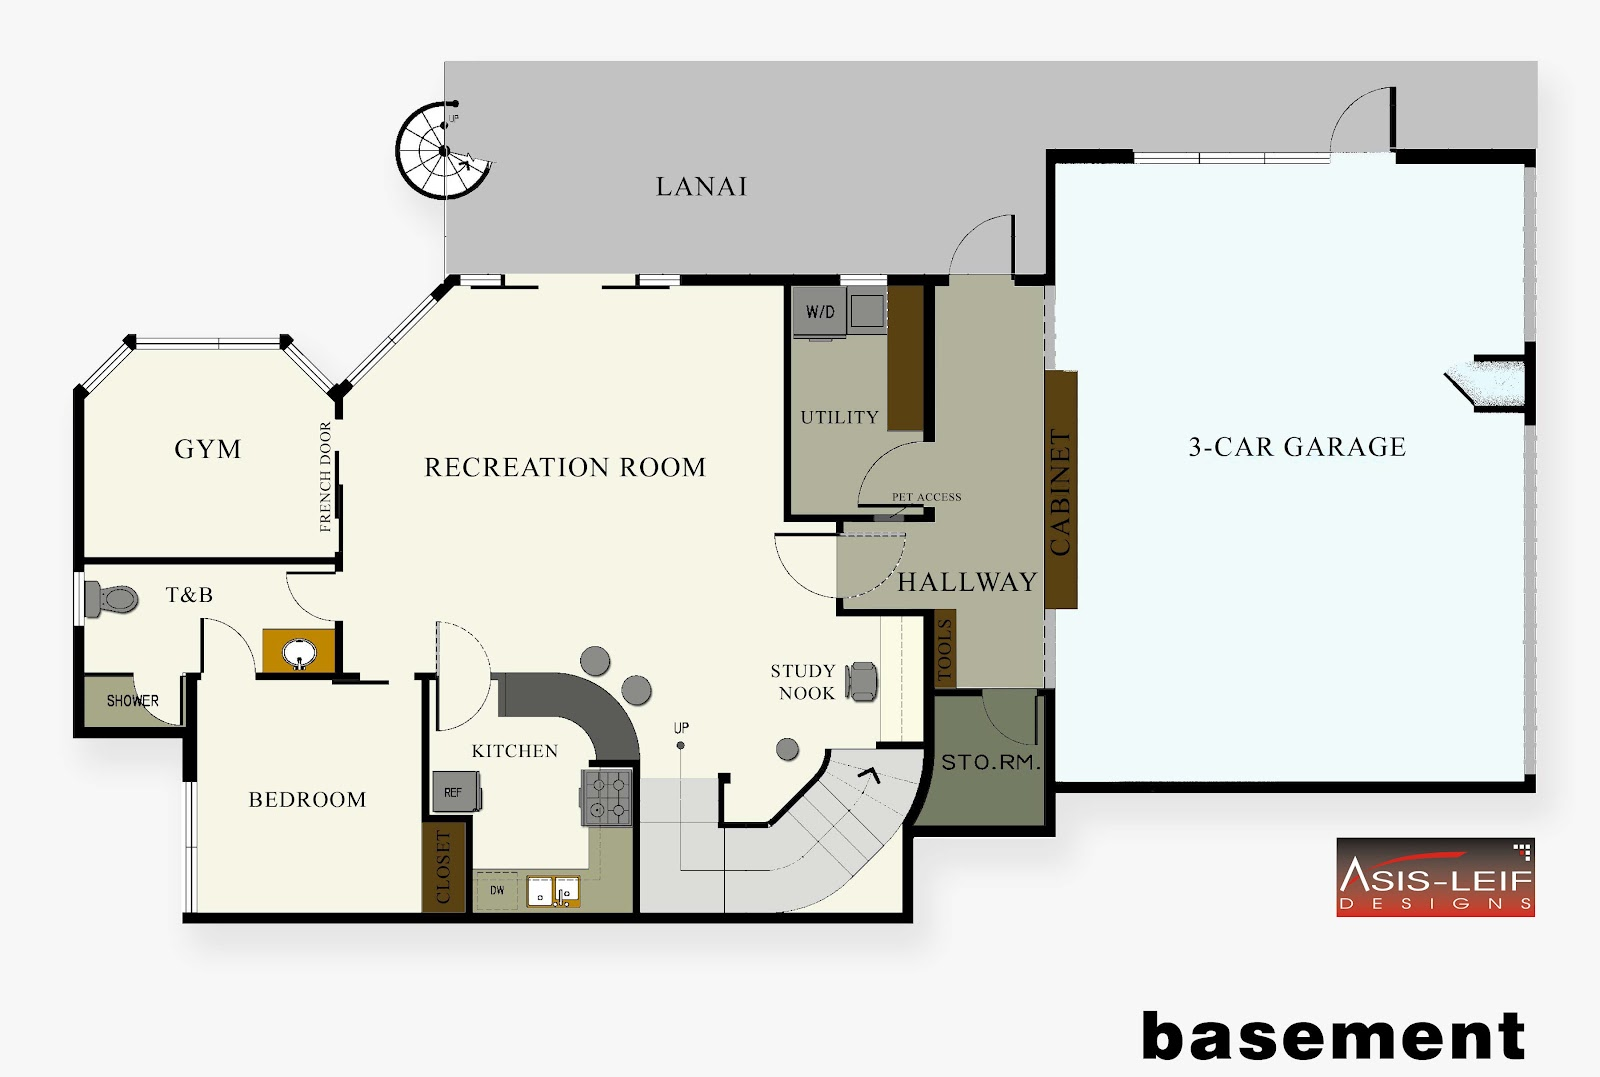 Basement floor plans ideas house plans 1849 for Home plans with basement floor plans